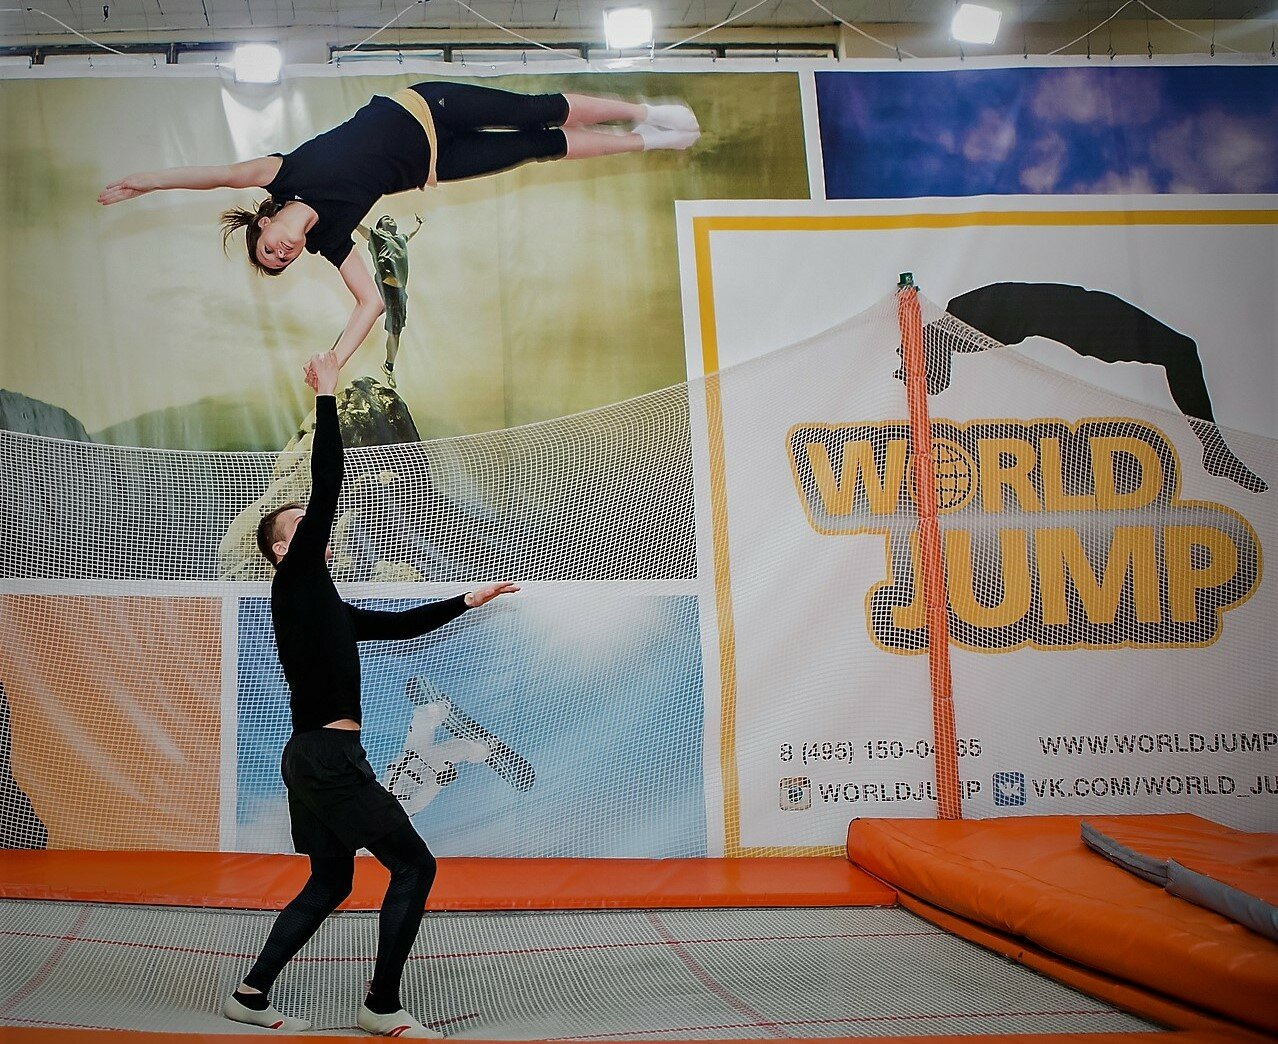 worldjump open march17 555